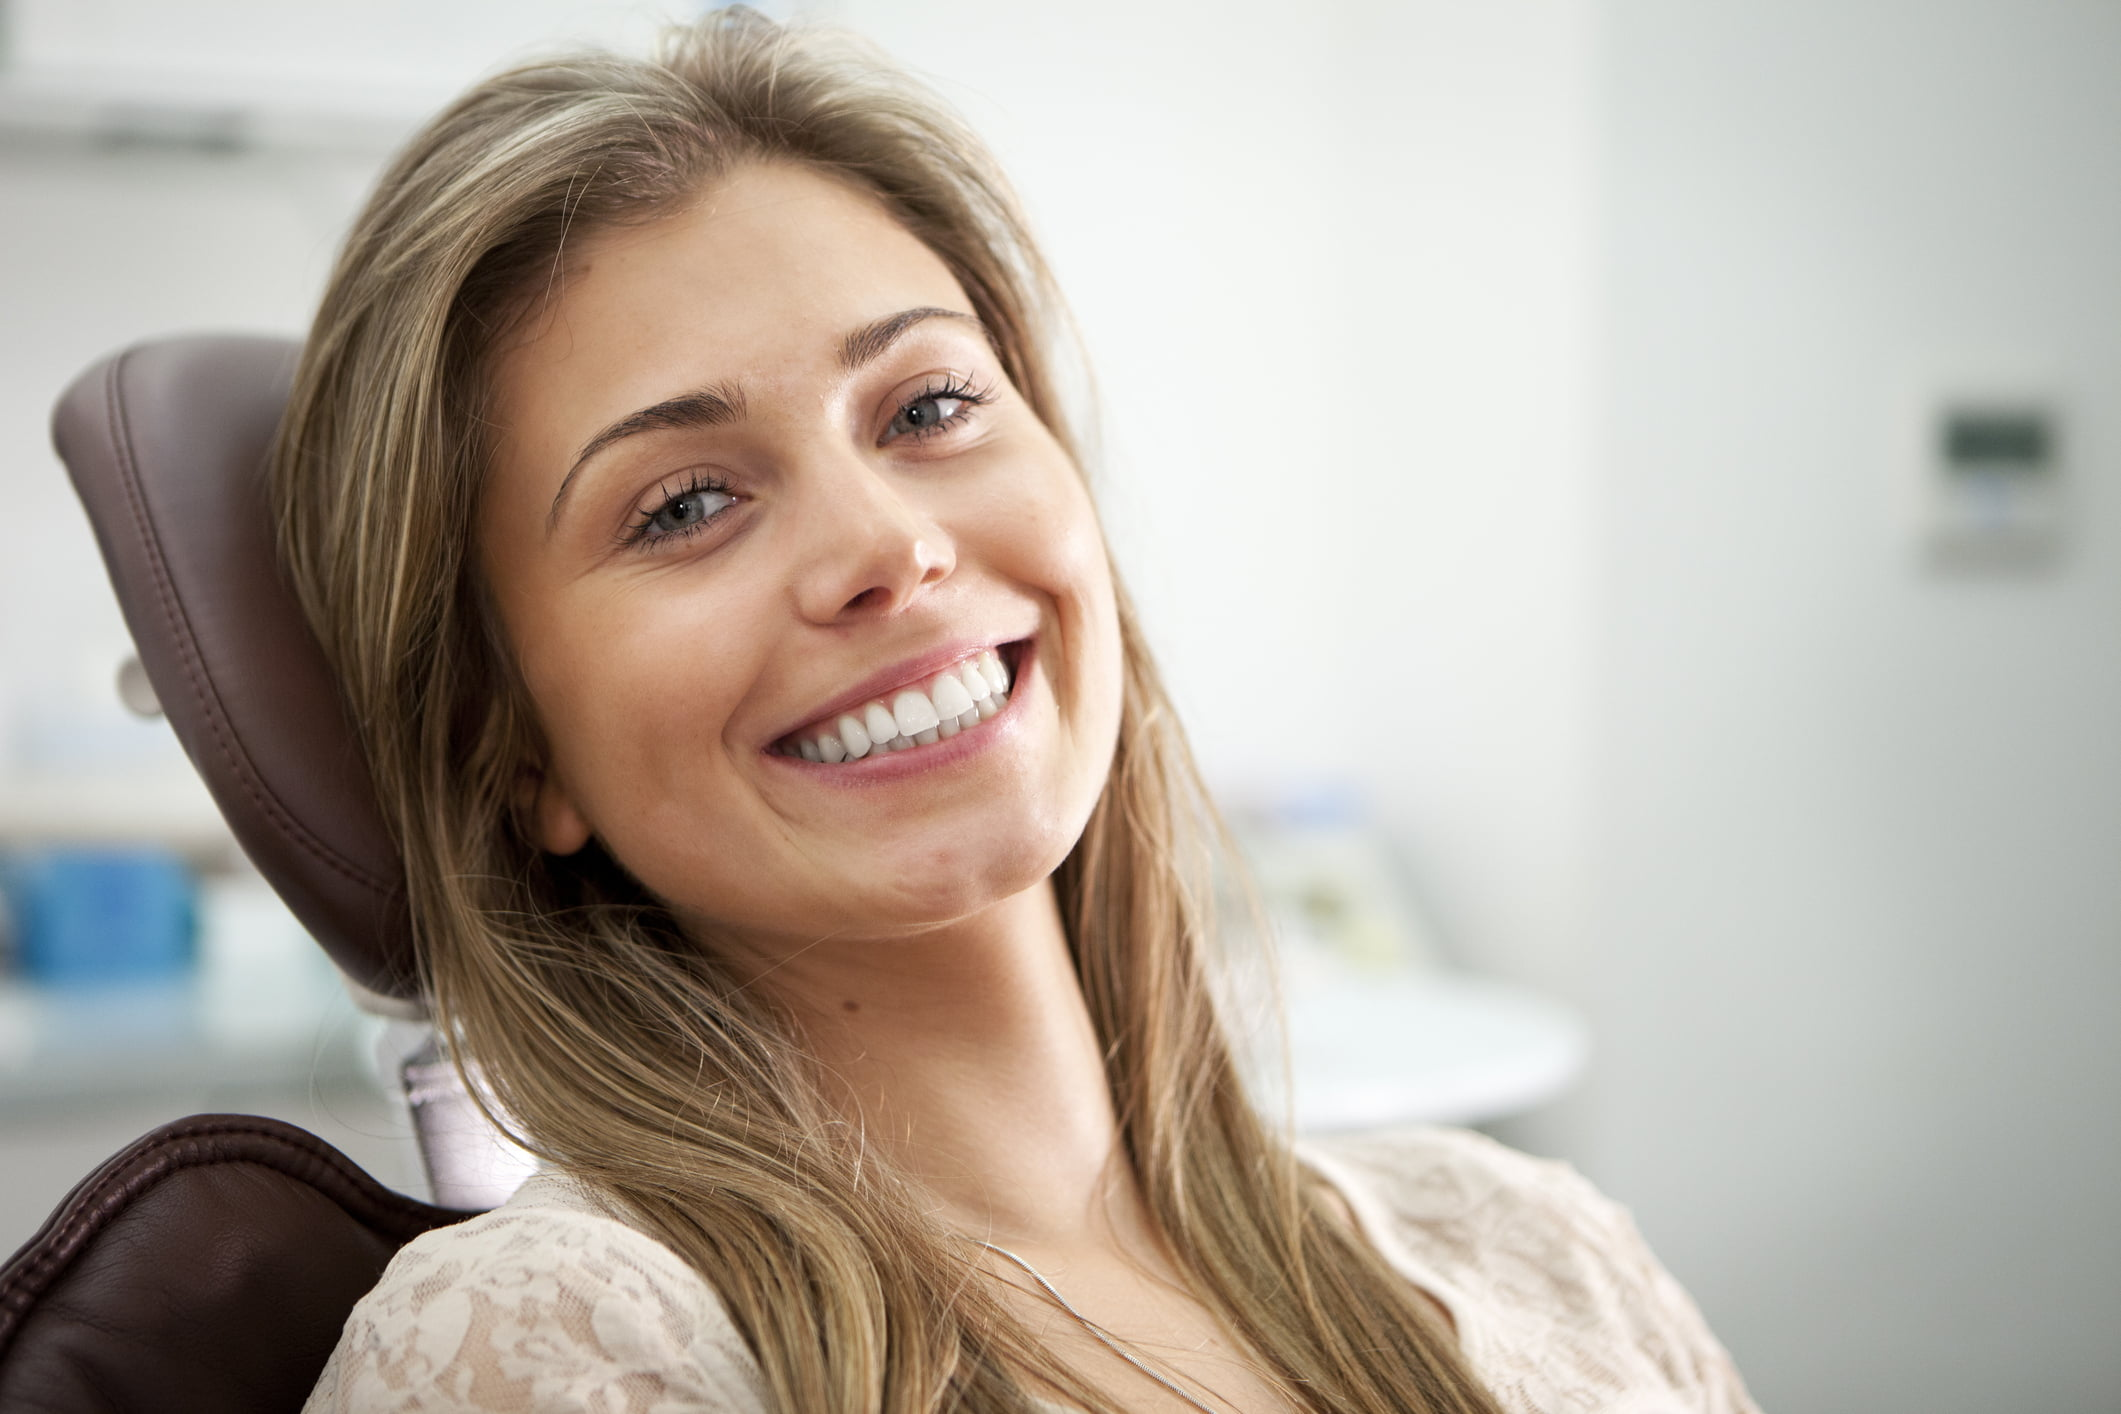 Bright smile from the Dentist's Chair | Dentist Downtown Calgary | Eau Claire Park Dental